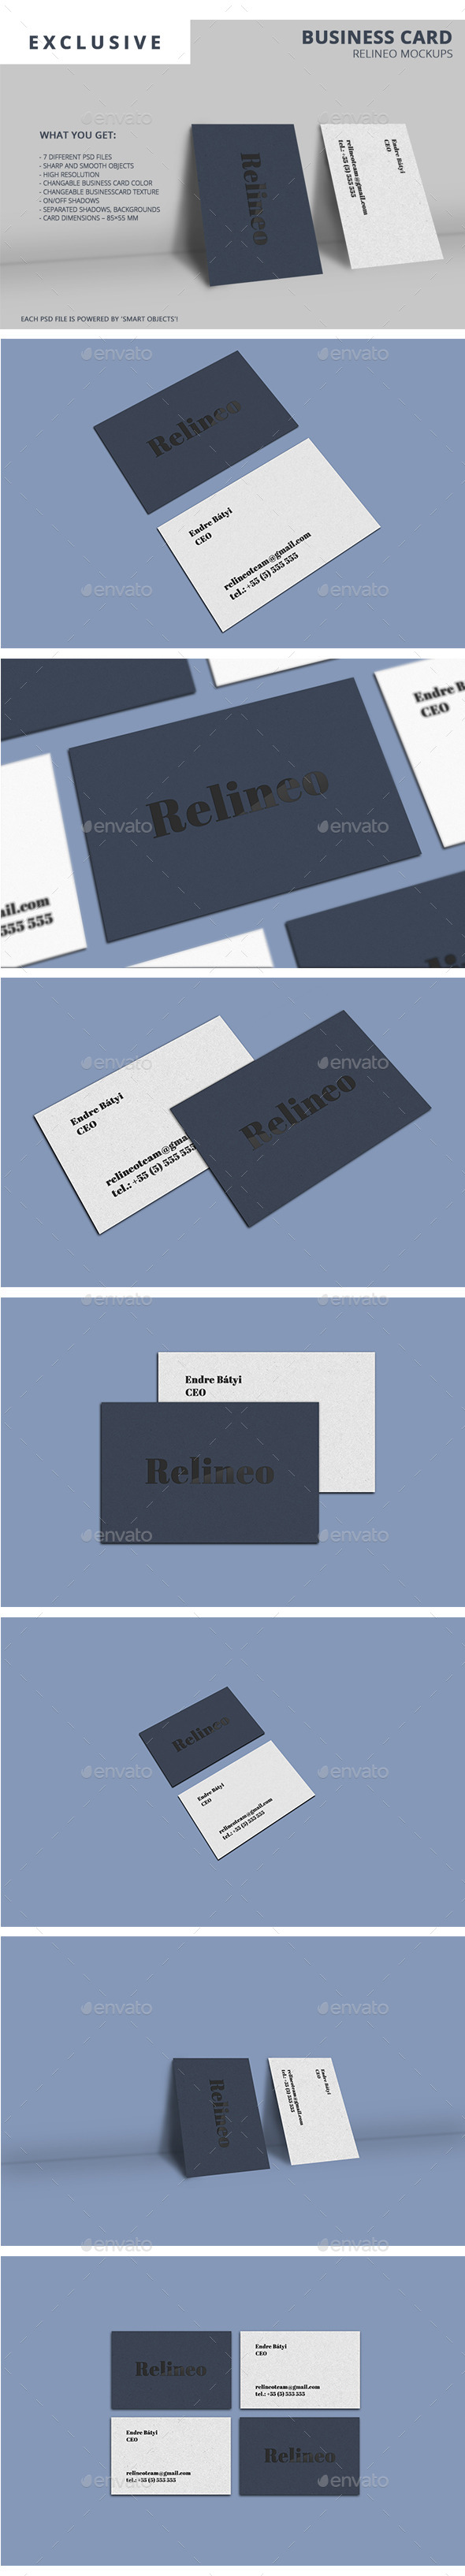 Business Card Mock-up Pack Vol.2 - Business Cards Print